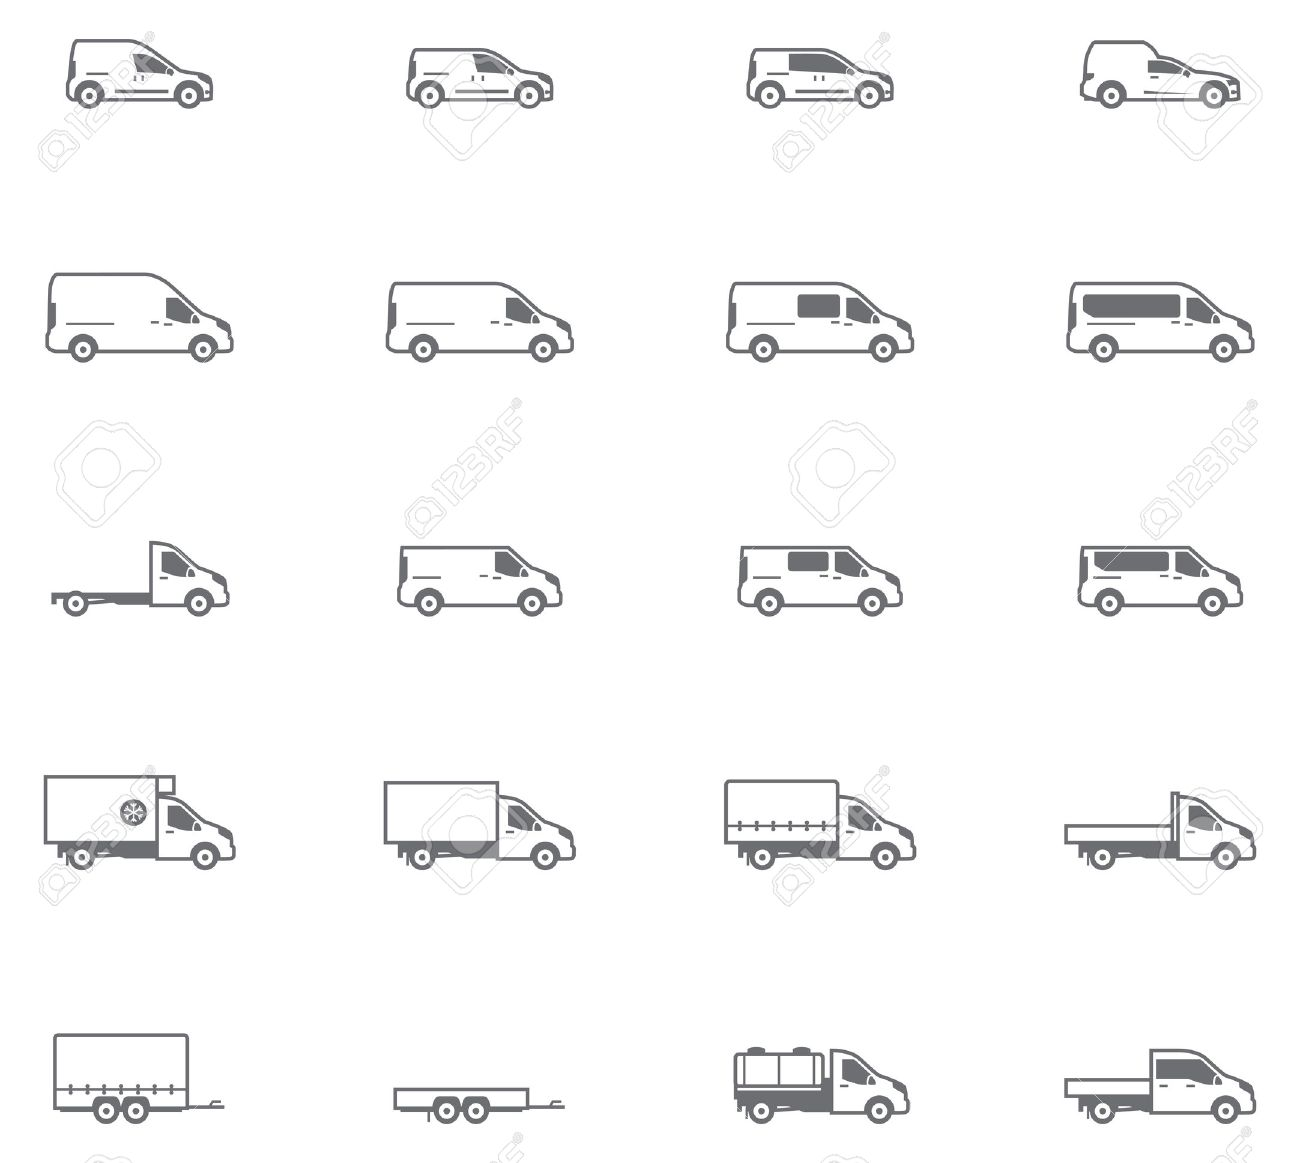 Set of the different types of commercial transport vehicles - 36657196